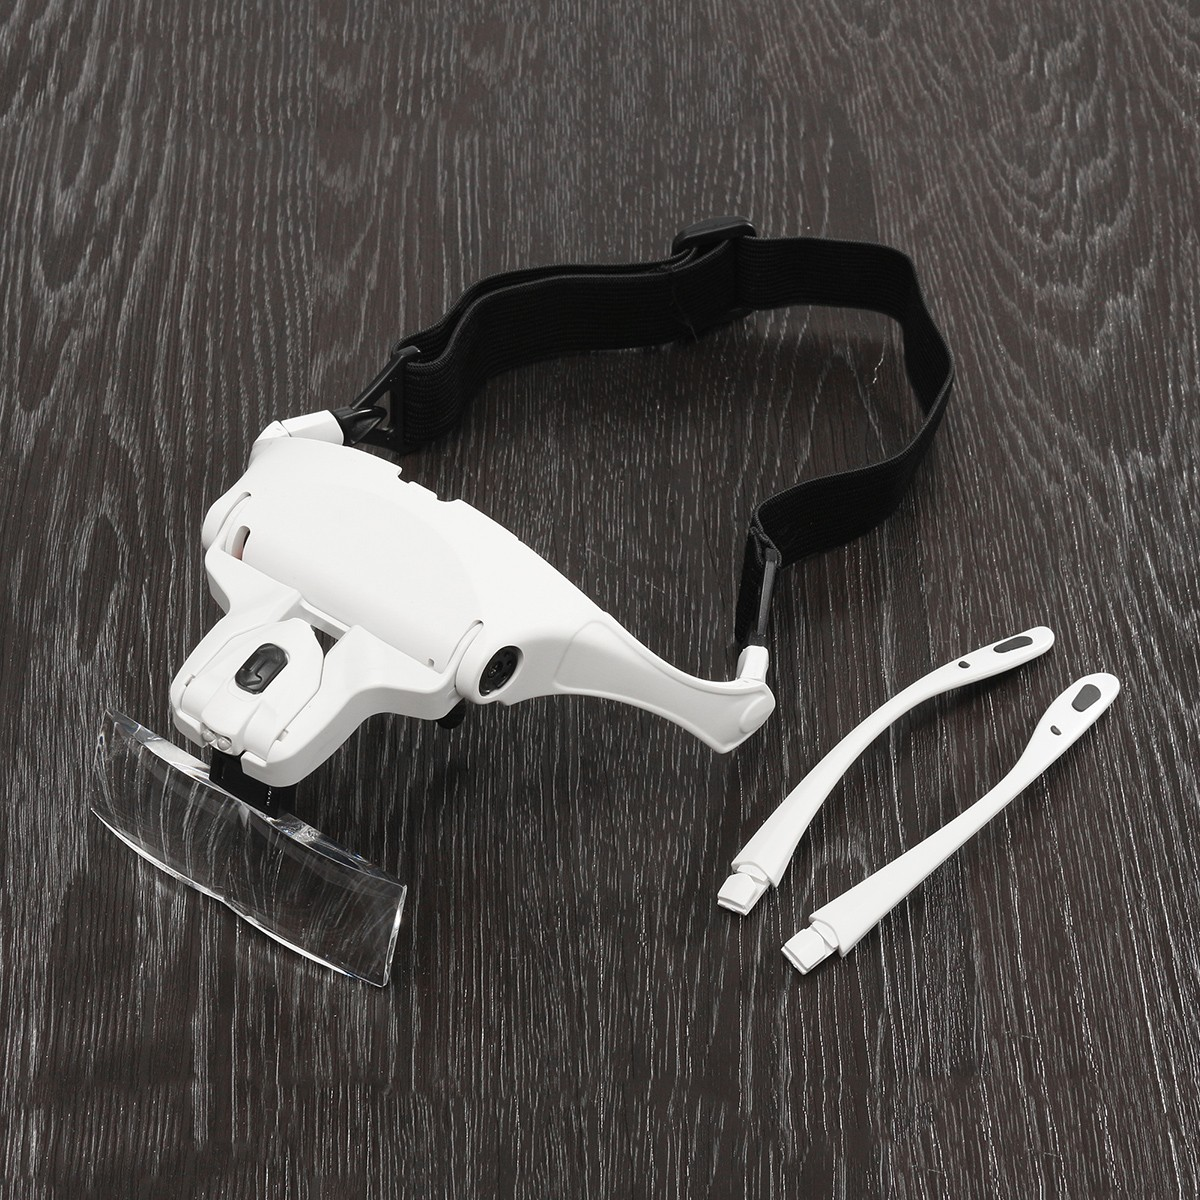 1X 1.5X 2X 2.5X 3.5X Headband Headset Jeweler Magnifier Magnifying Glass Loupe Glasses with LED Light